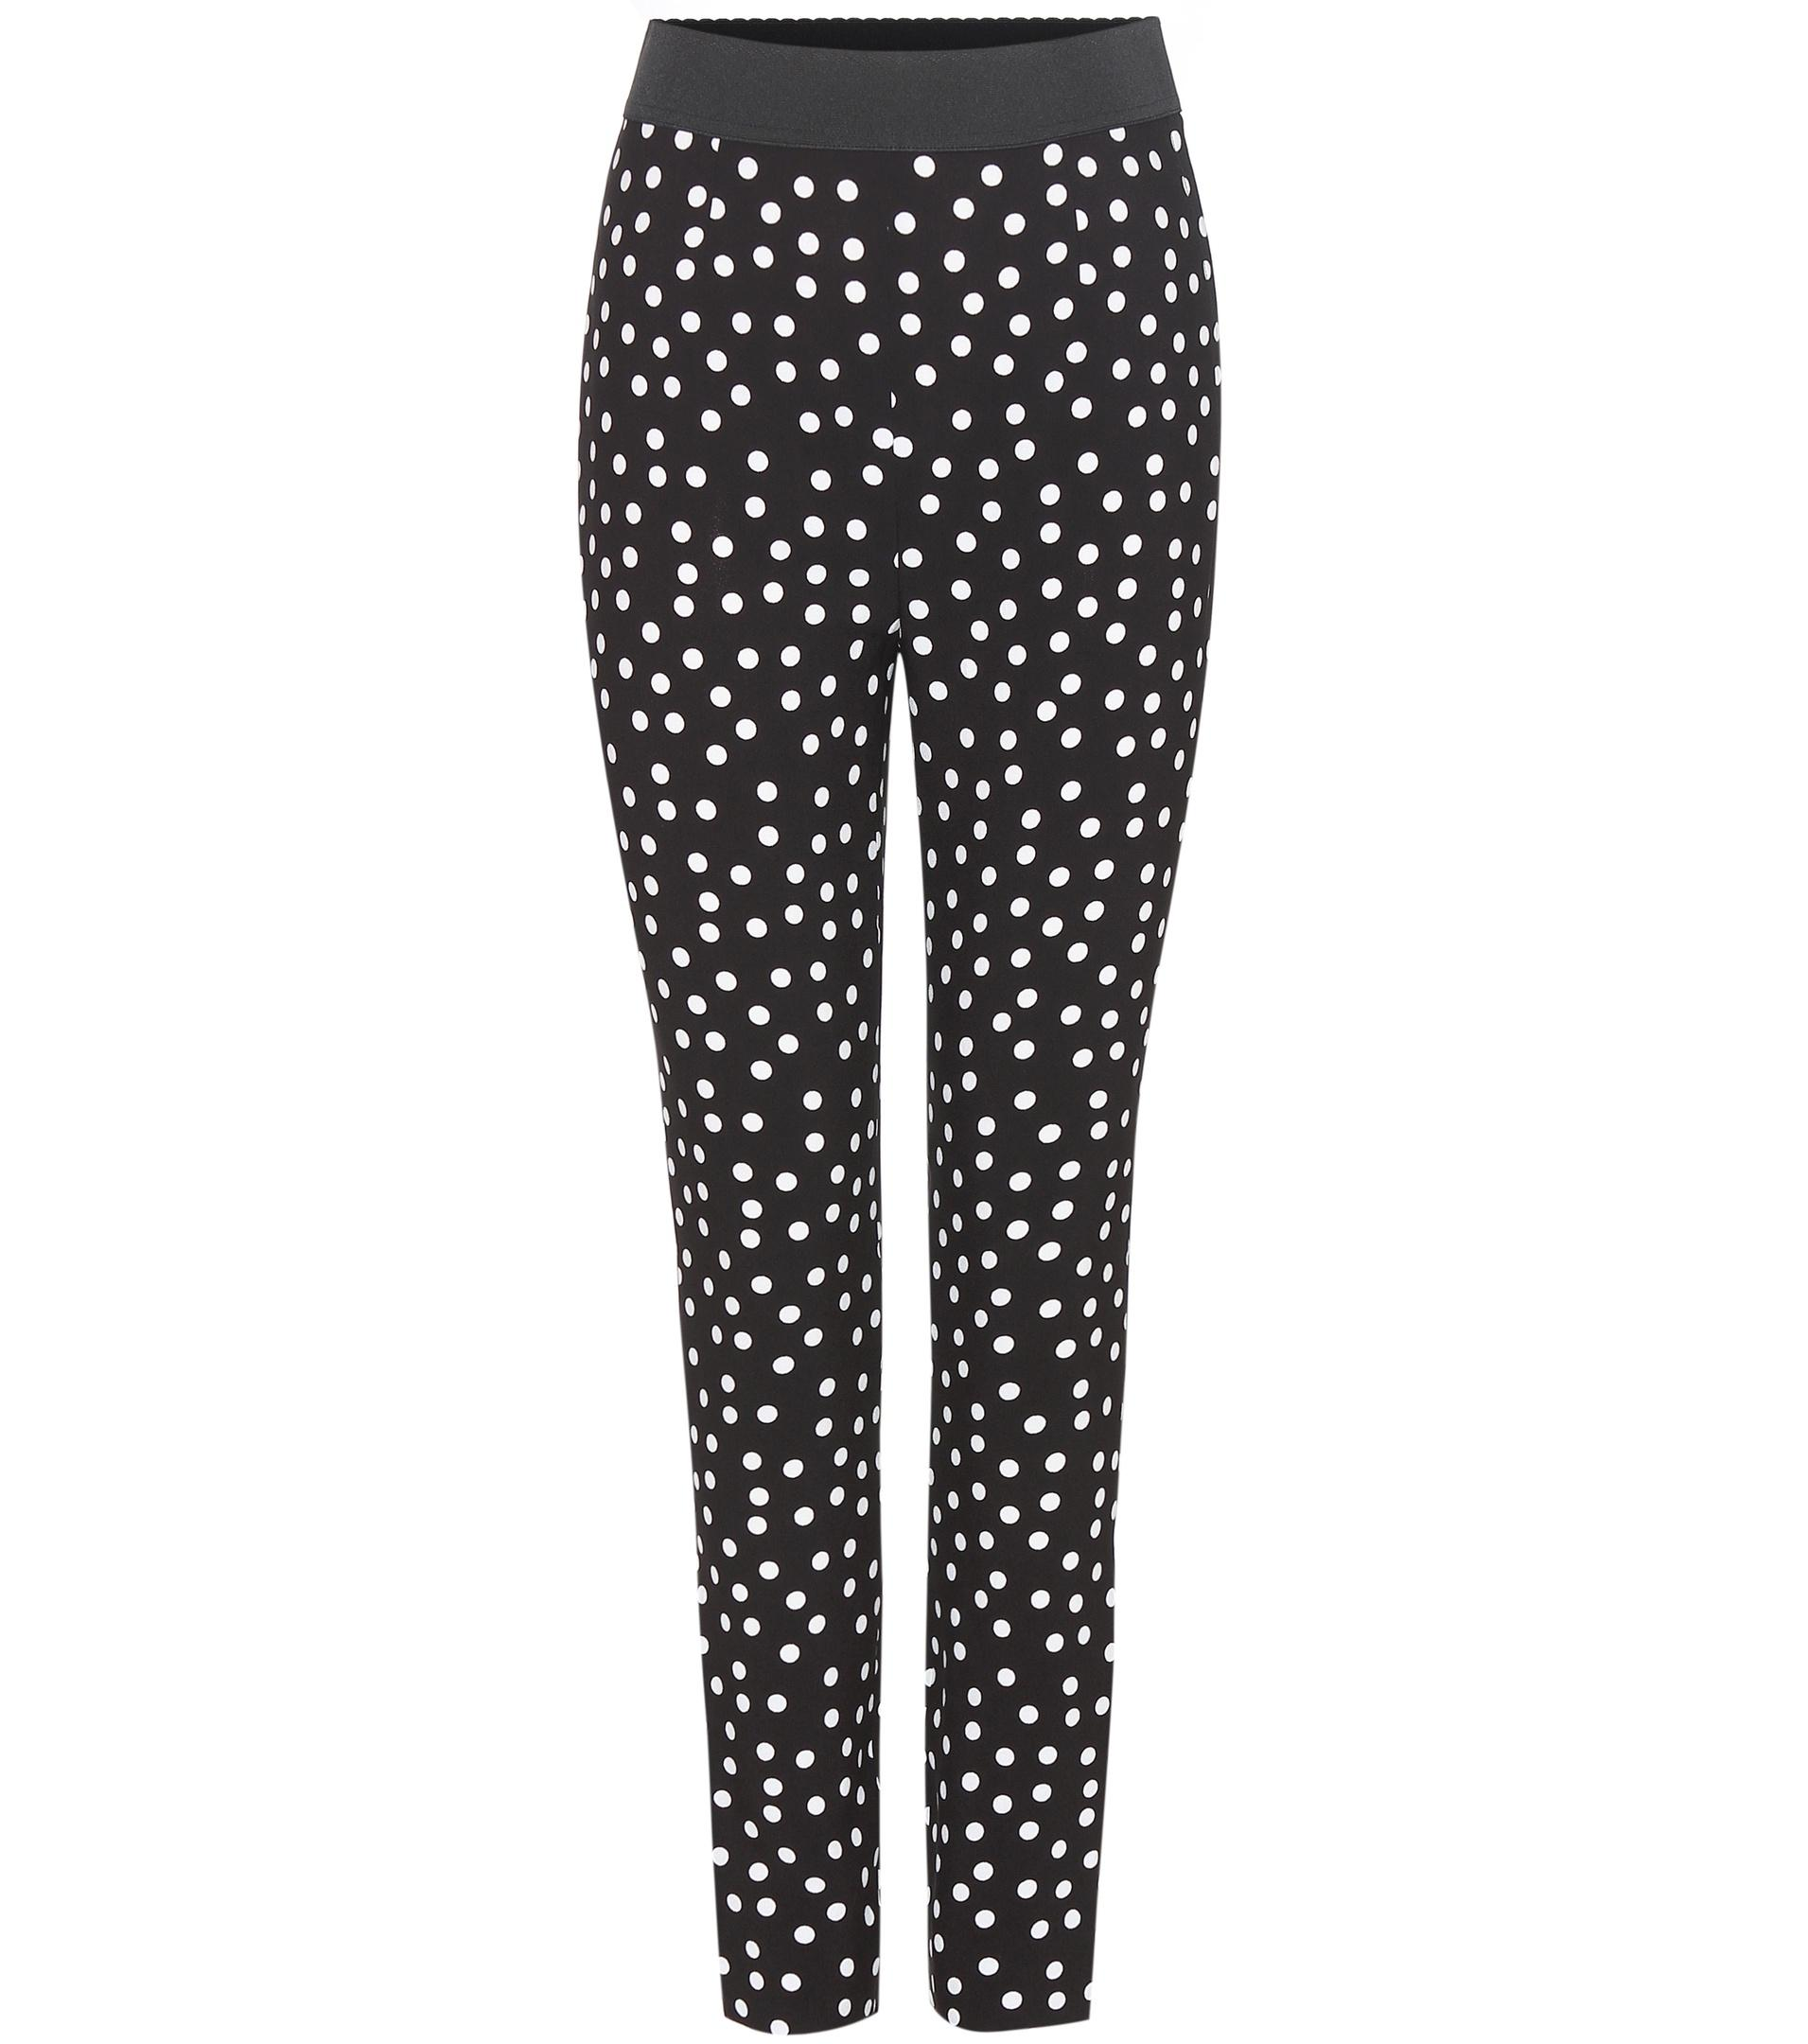 You'll be feeling extra, extra as you serve up a fresh look in the Dot Off the Press Black and White Polka Dot Pants! An elasticized waist creates a perfect high-waisted fit atop these light and breezy, woven polka dot pants. Relaxed, tapered legs feature side seam pockets and a cropped length/5(3).